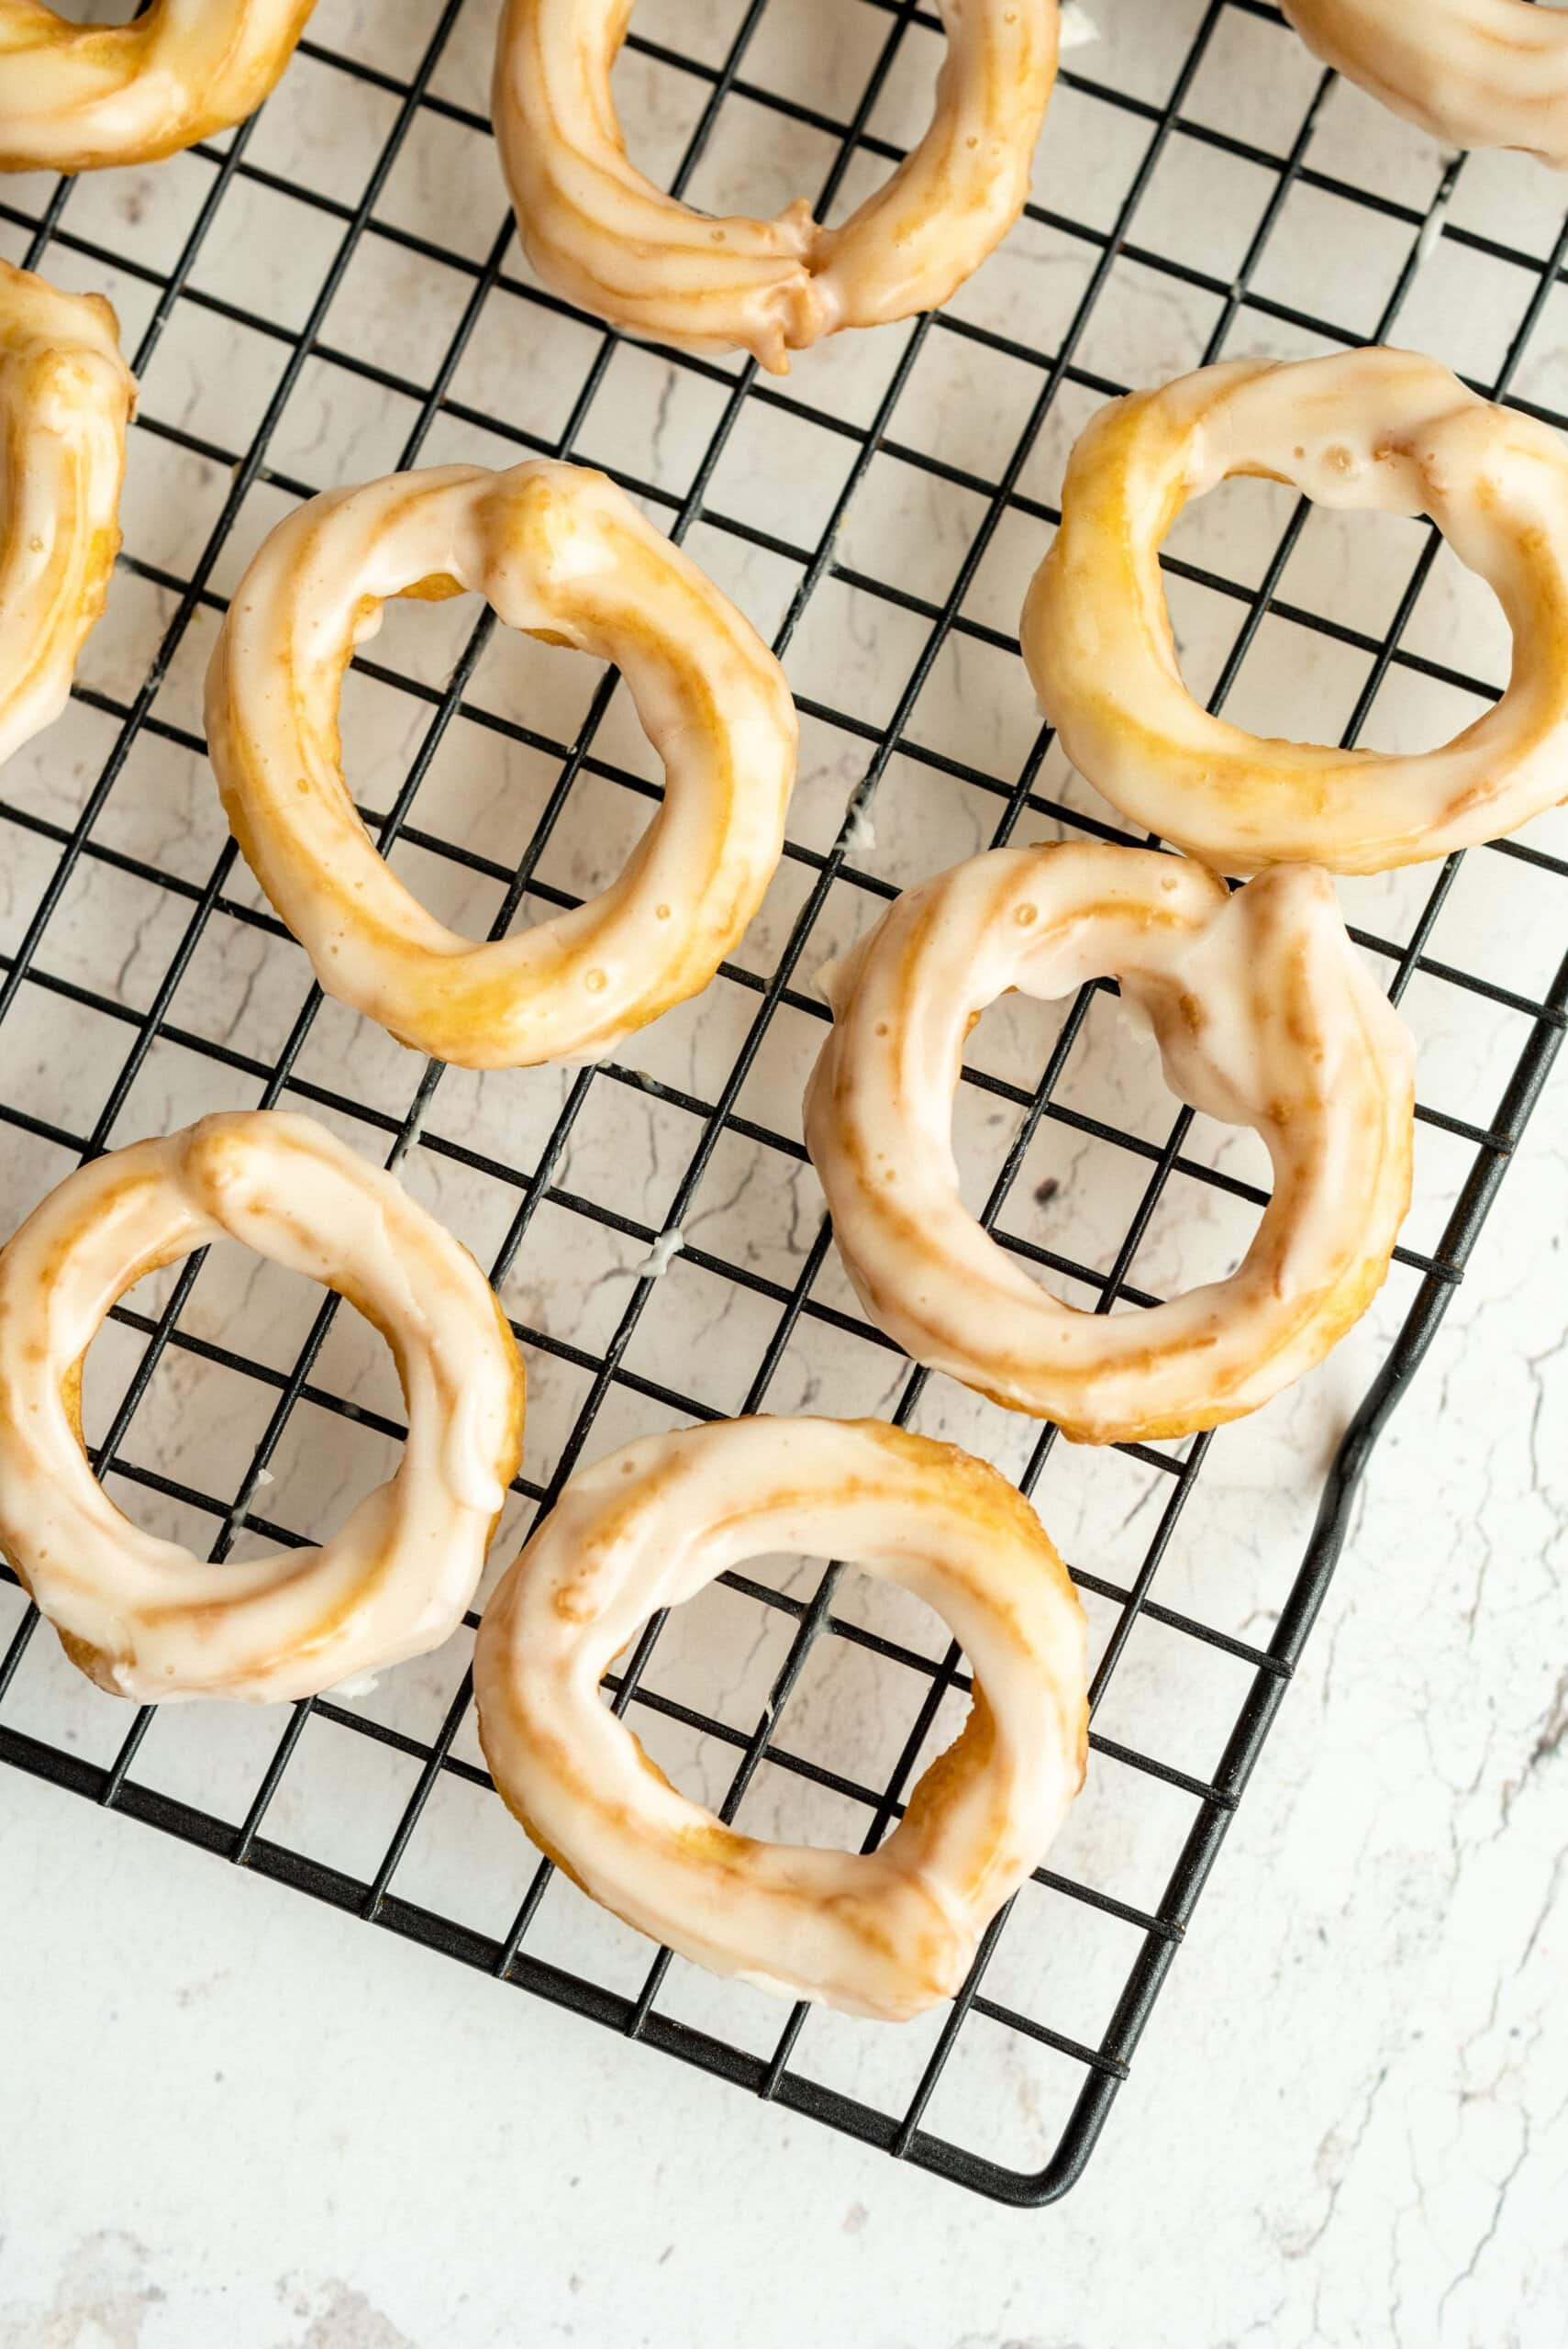 cruller donuts on a cooling wrack